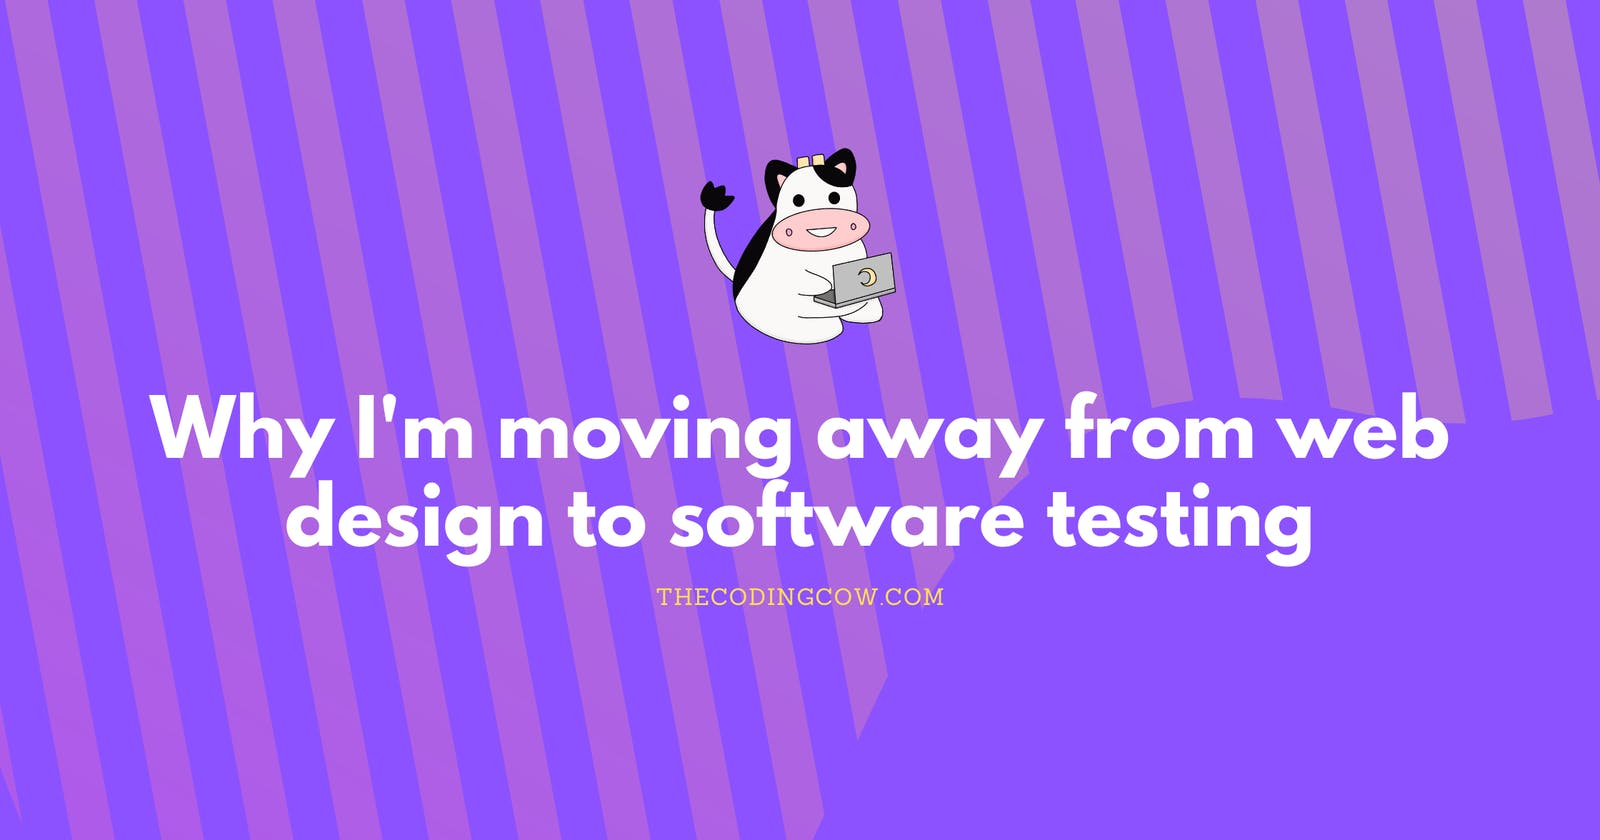 Why I'm moving away from web design to software testing